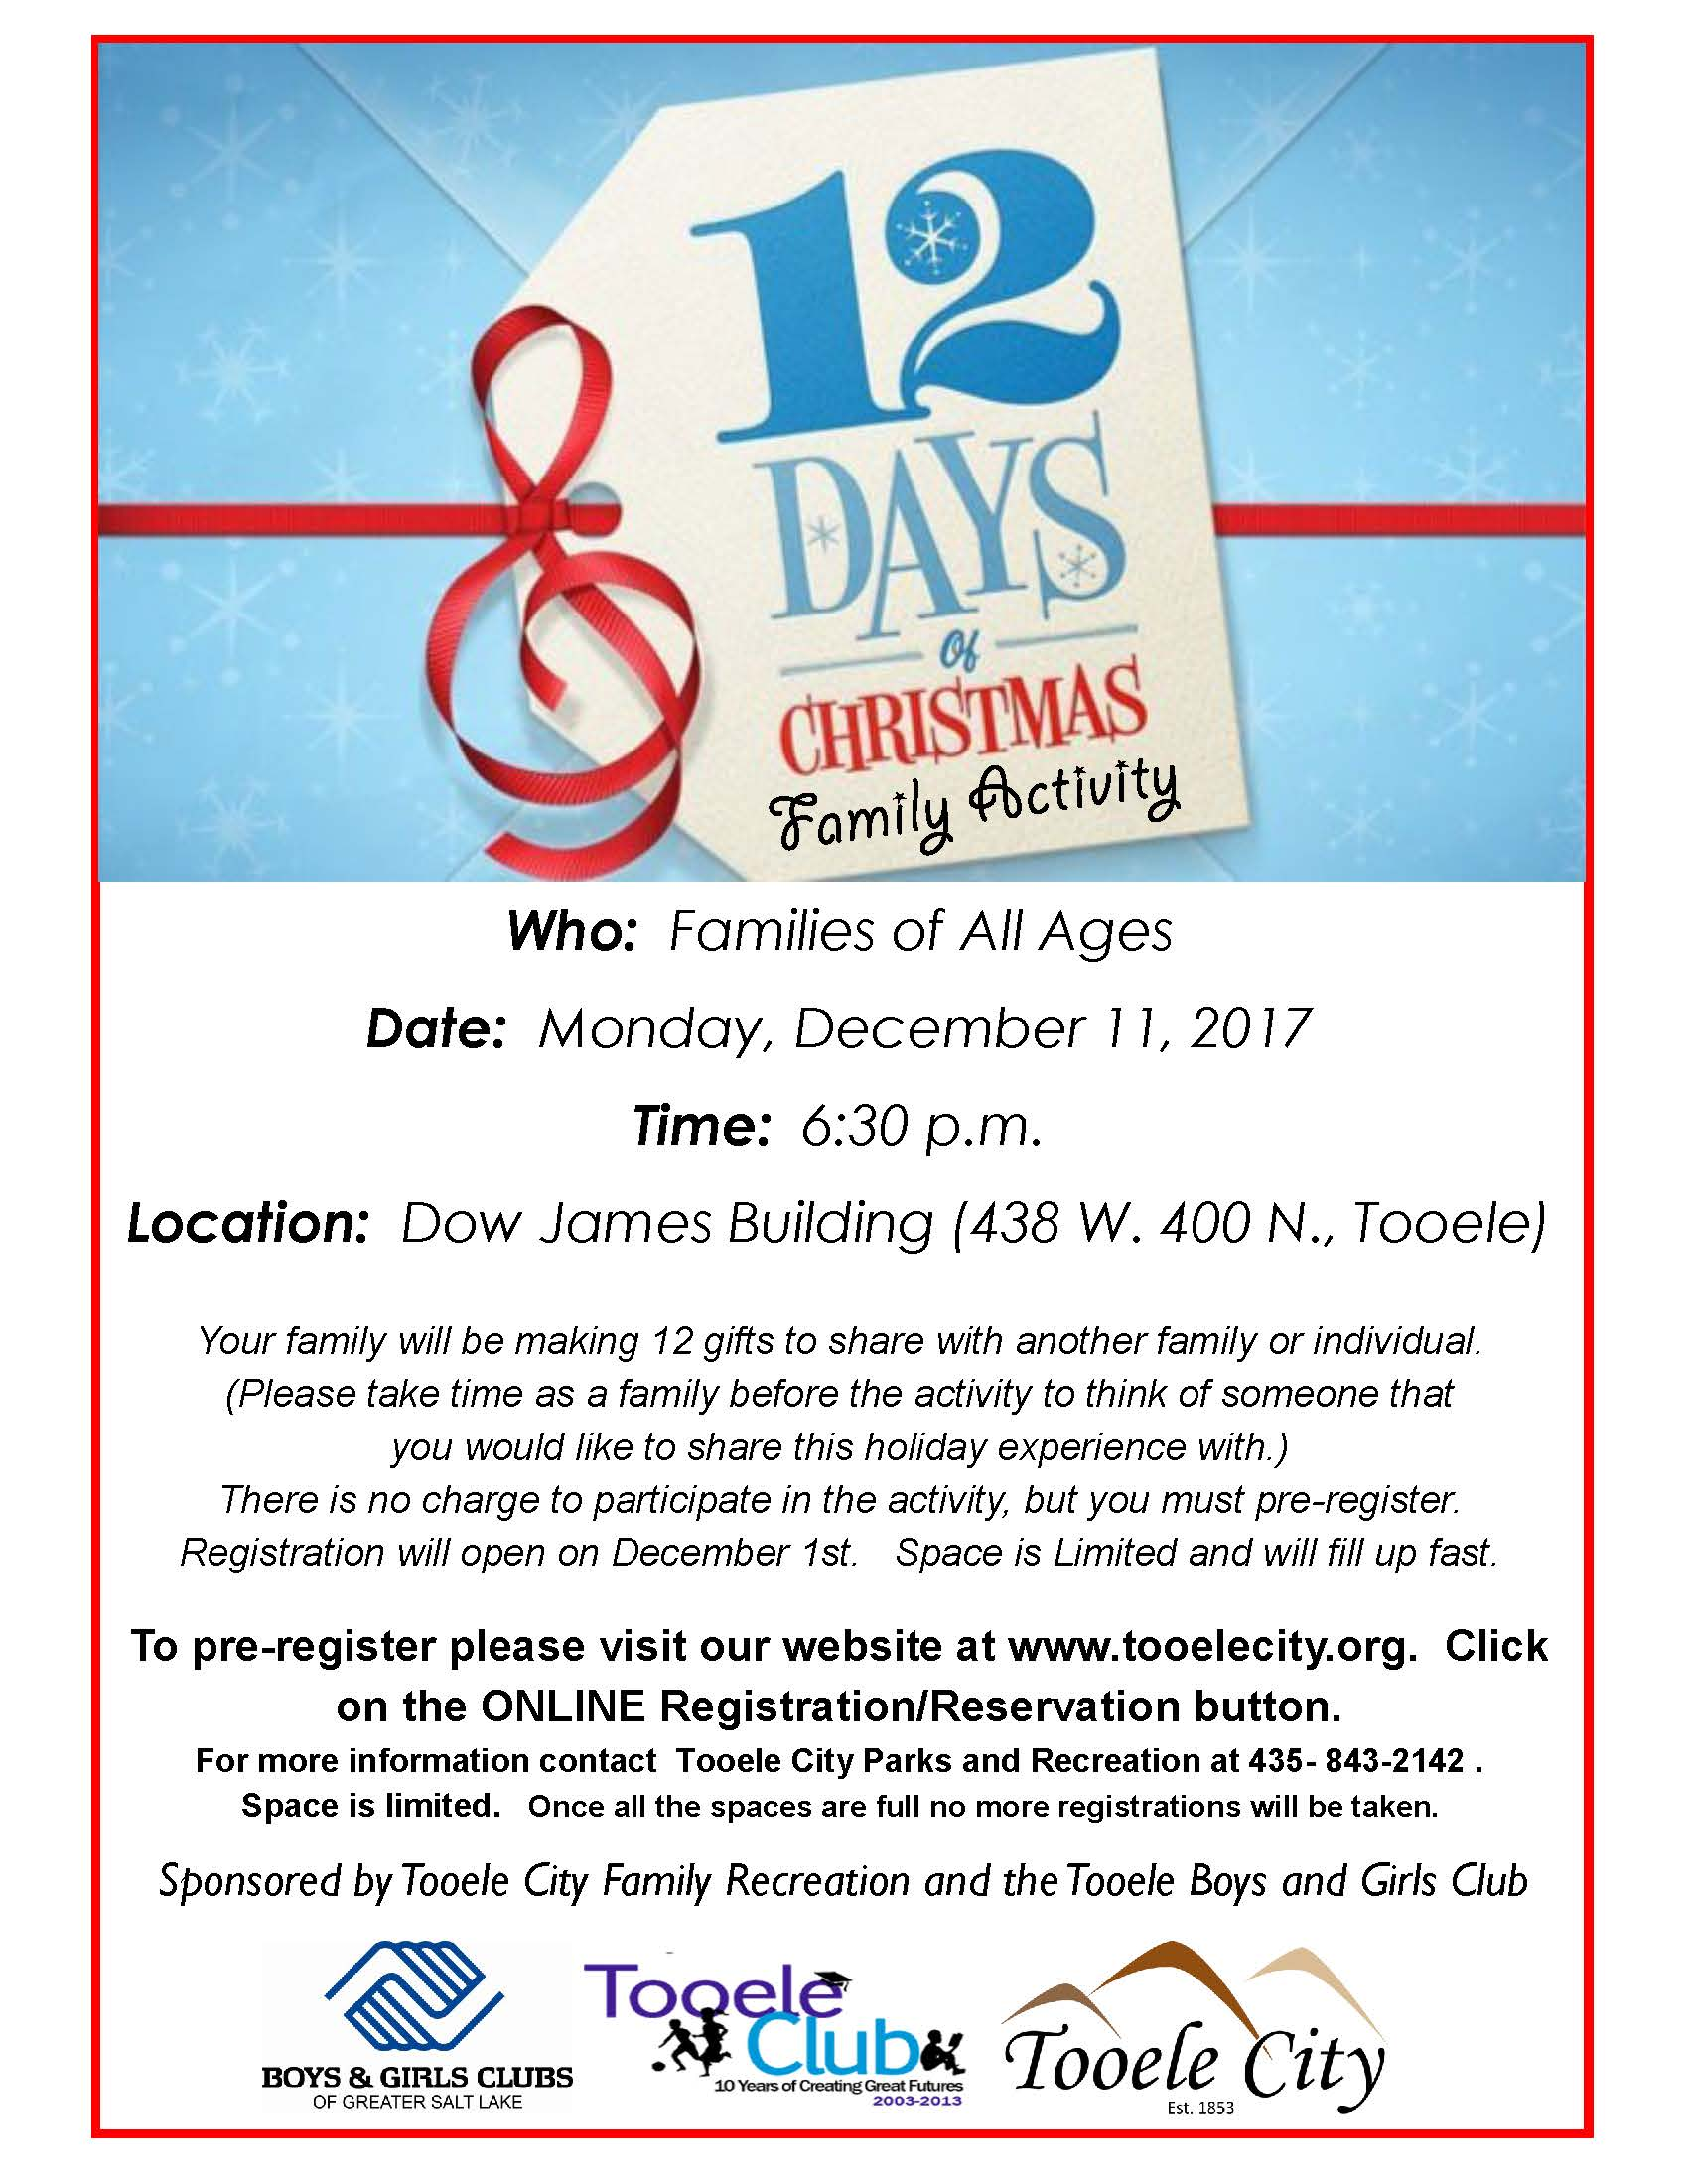 12 Days of Christmas - A FREE Family Event! @ Dow James | Tooele | Utah | United States